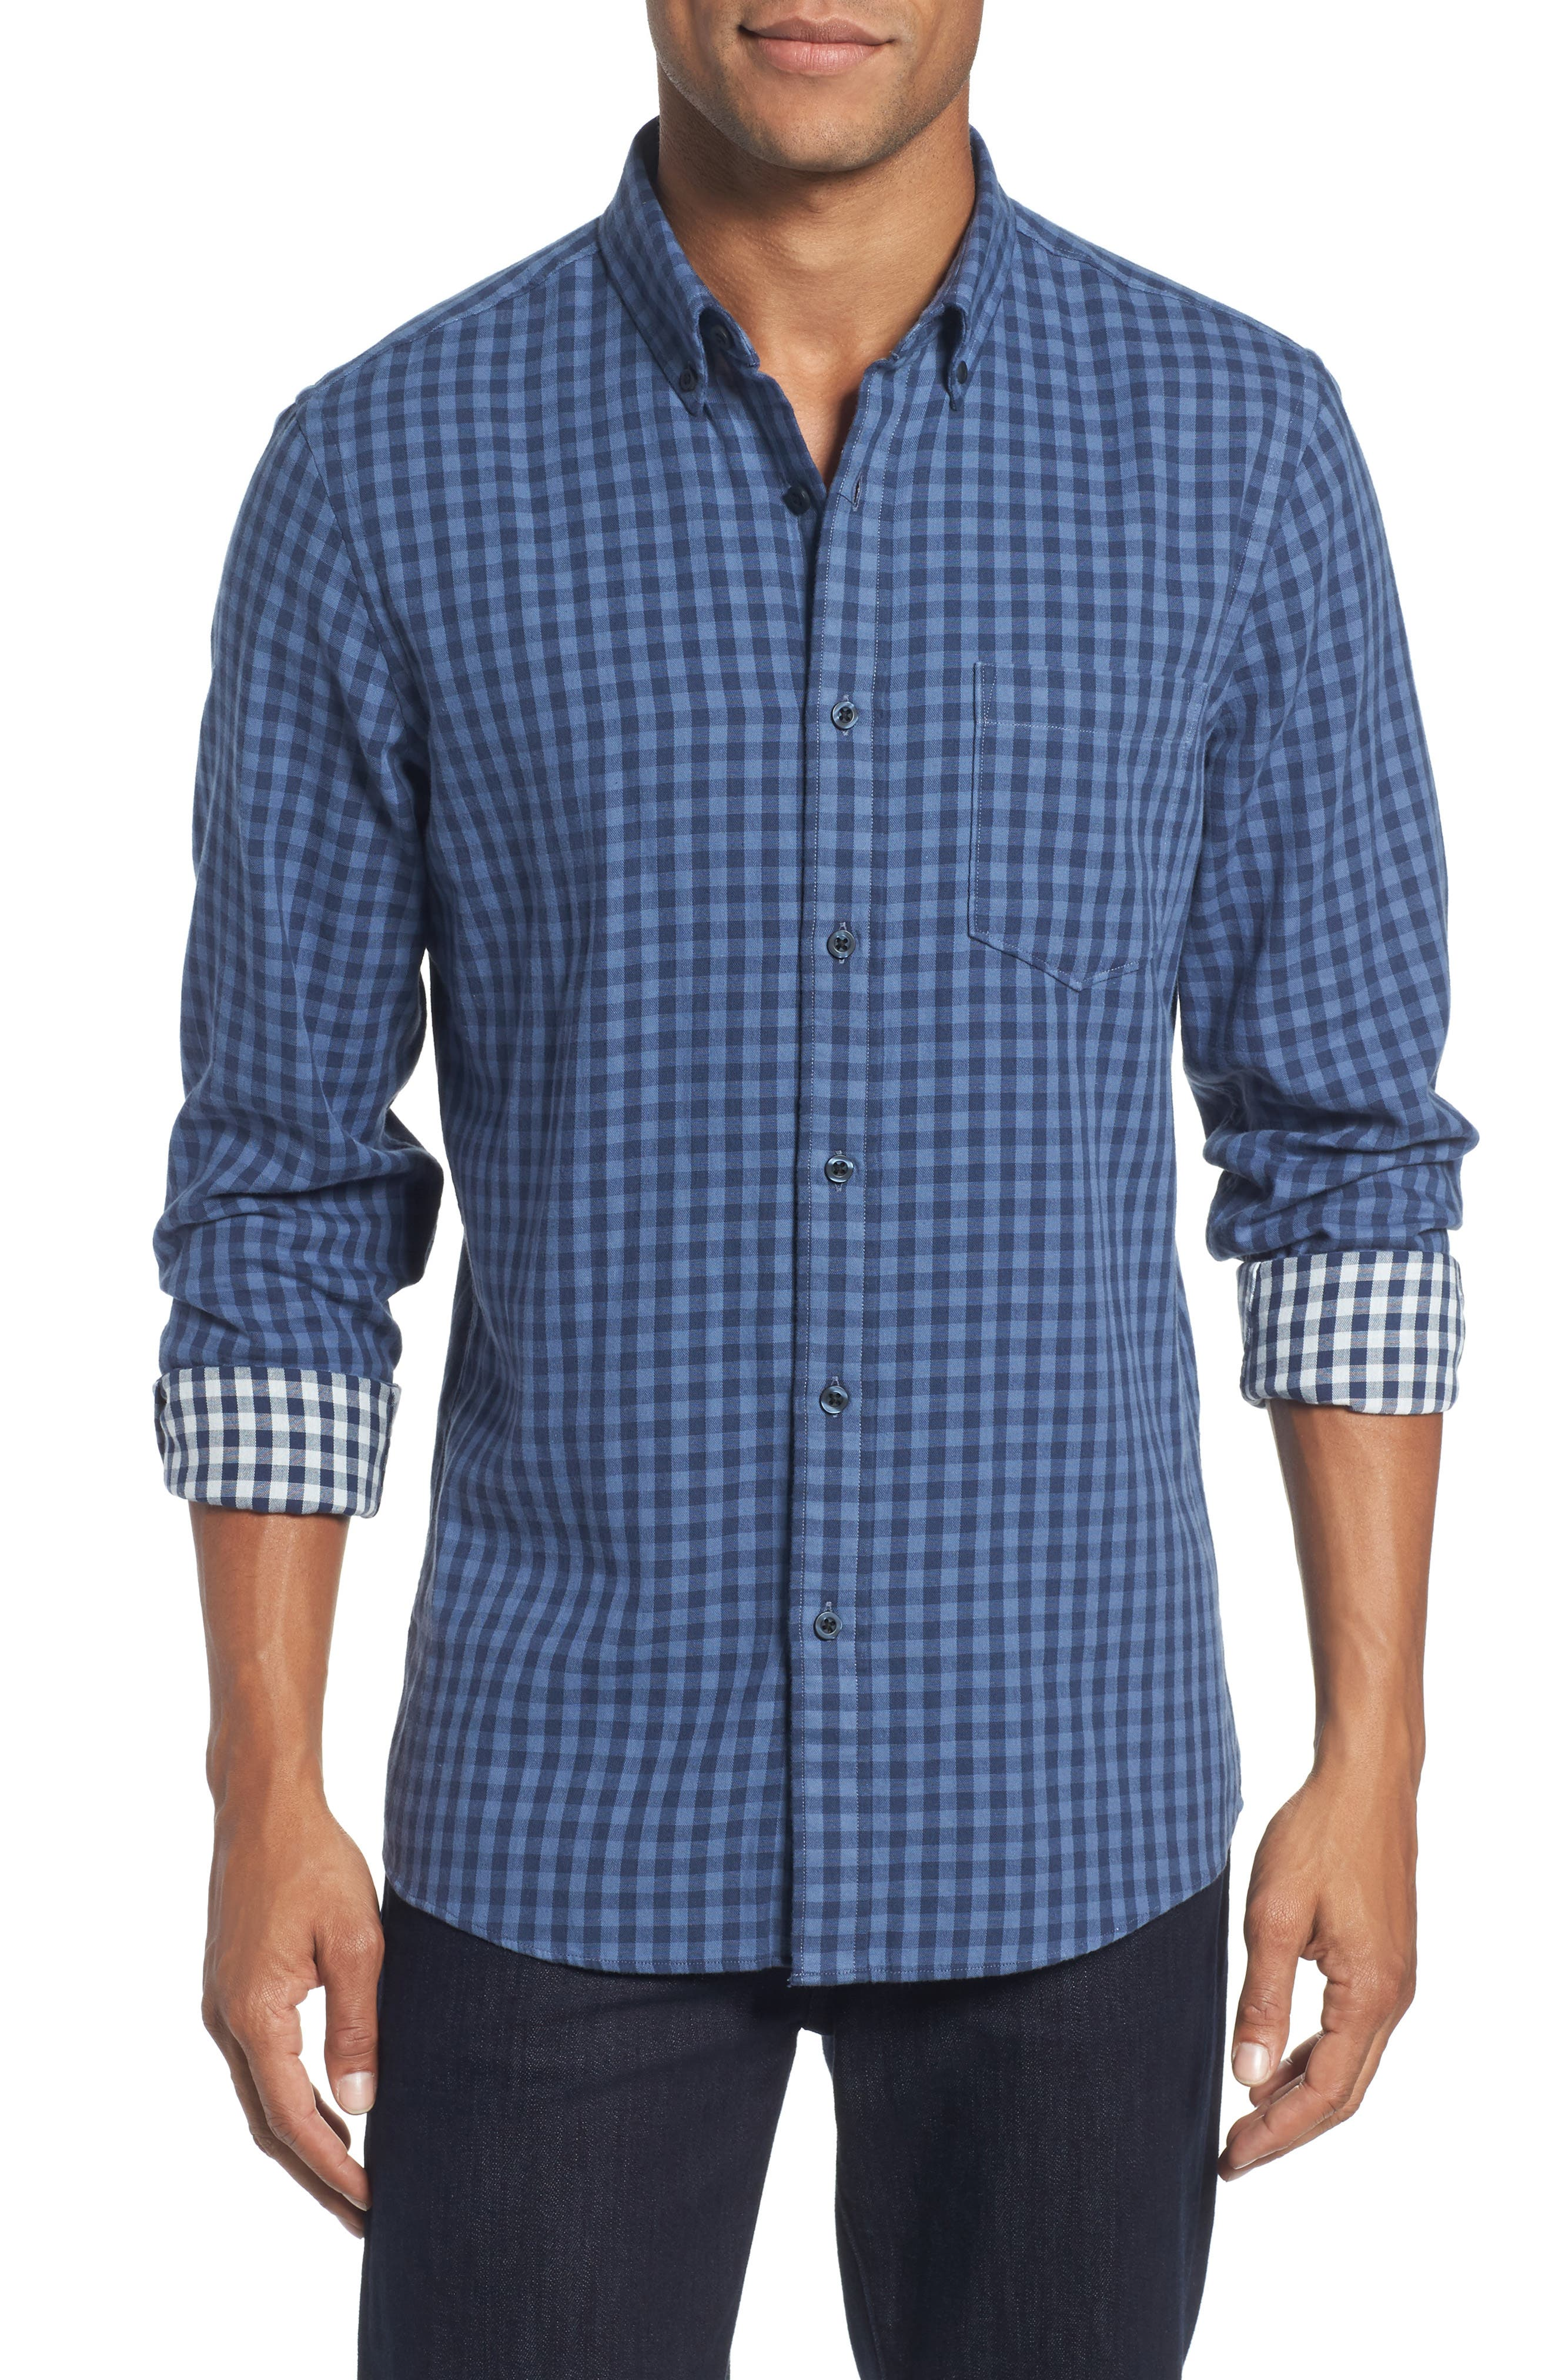 Trim Fit Duofold Check Sport Shirt,                         Main,                         color, Blue Canal Navy Plaid Duofold